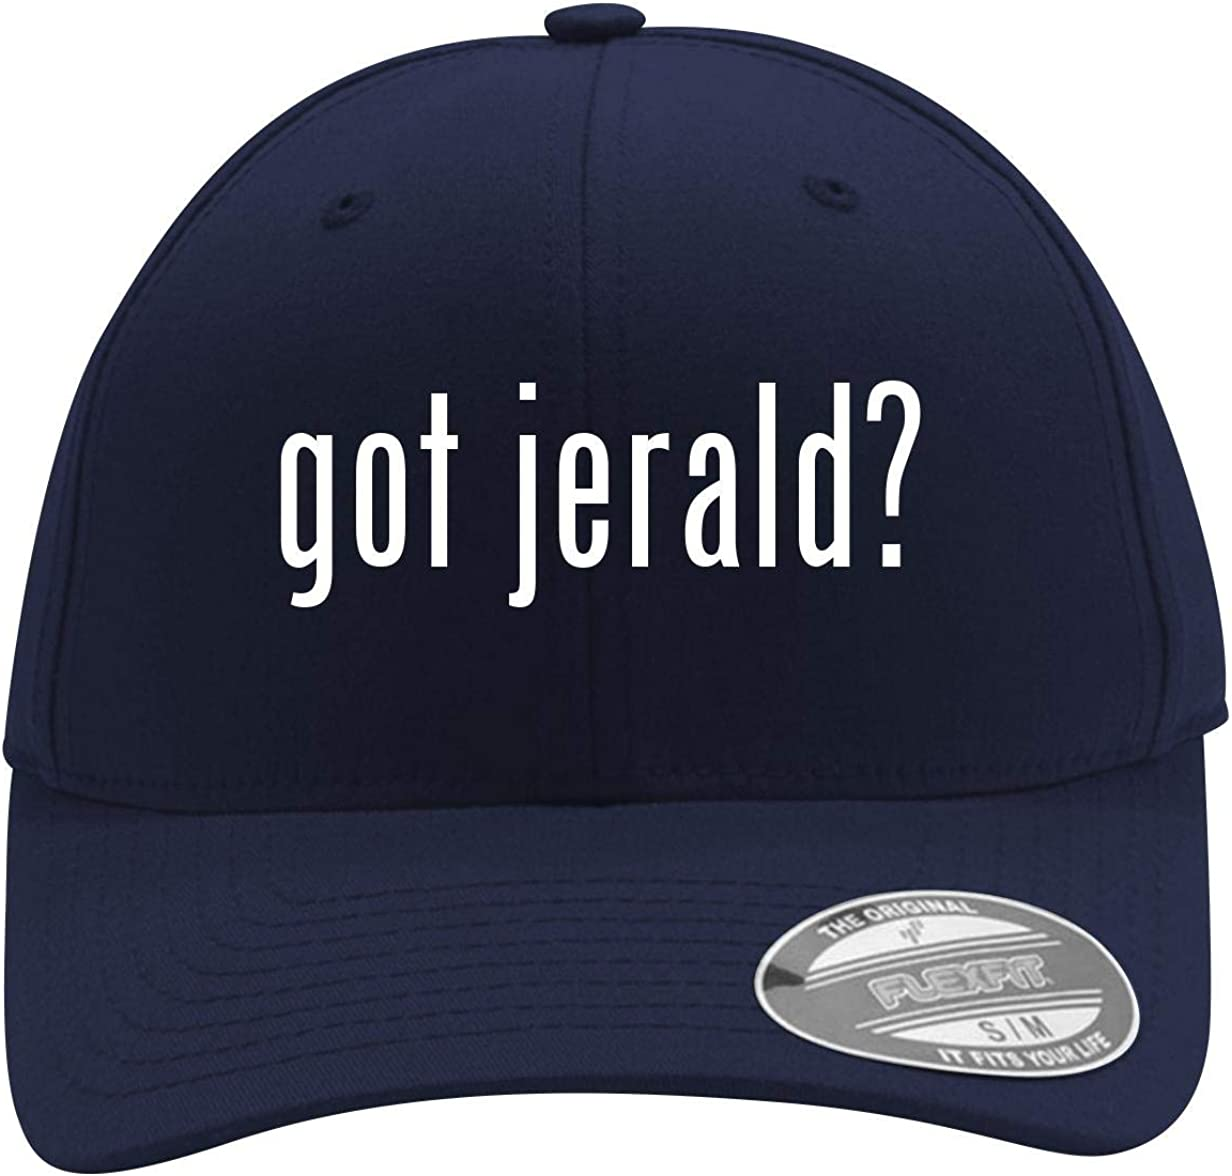 got Jerald - Men's Flexfit Baseball Cap Hat 61UxzXuqWhL